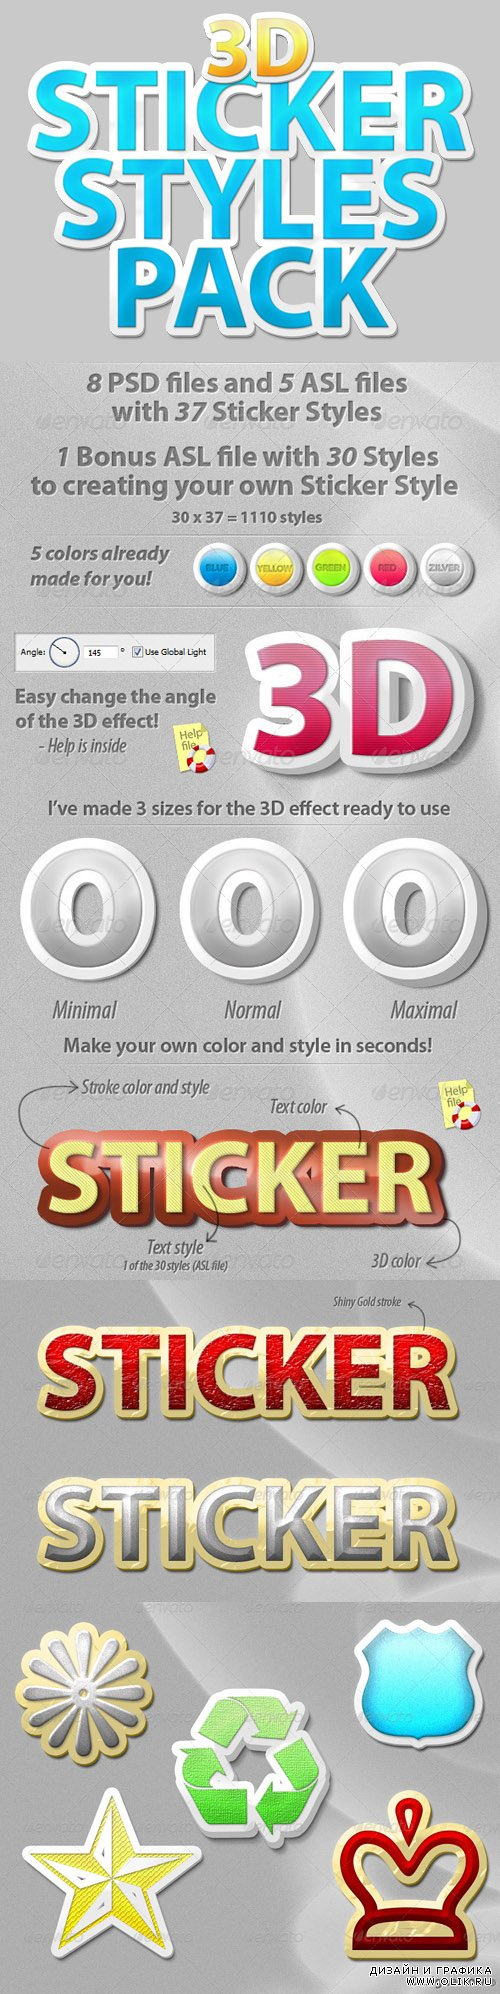 3D Sticker Styles for Photoshop